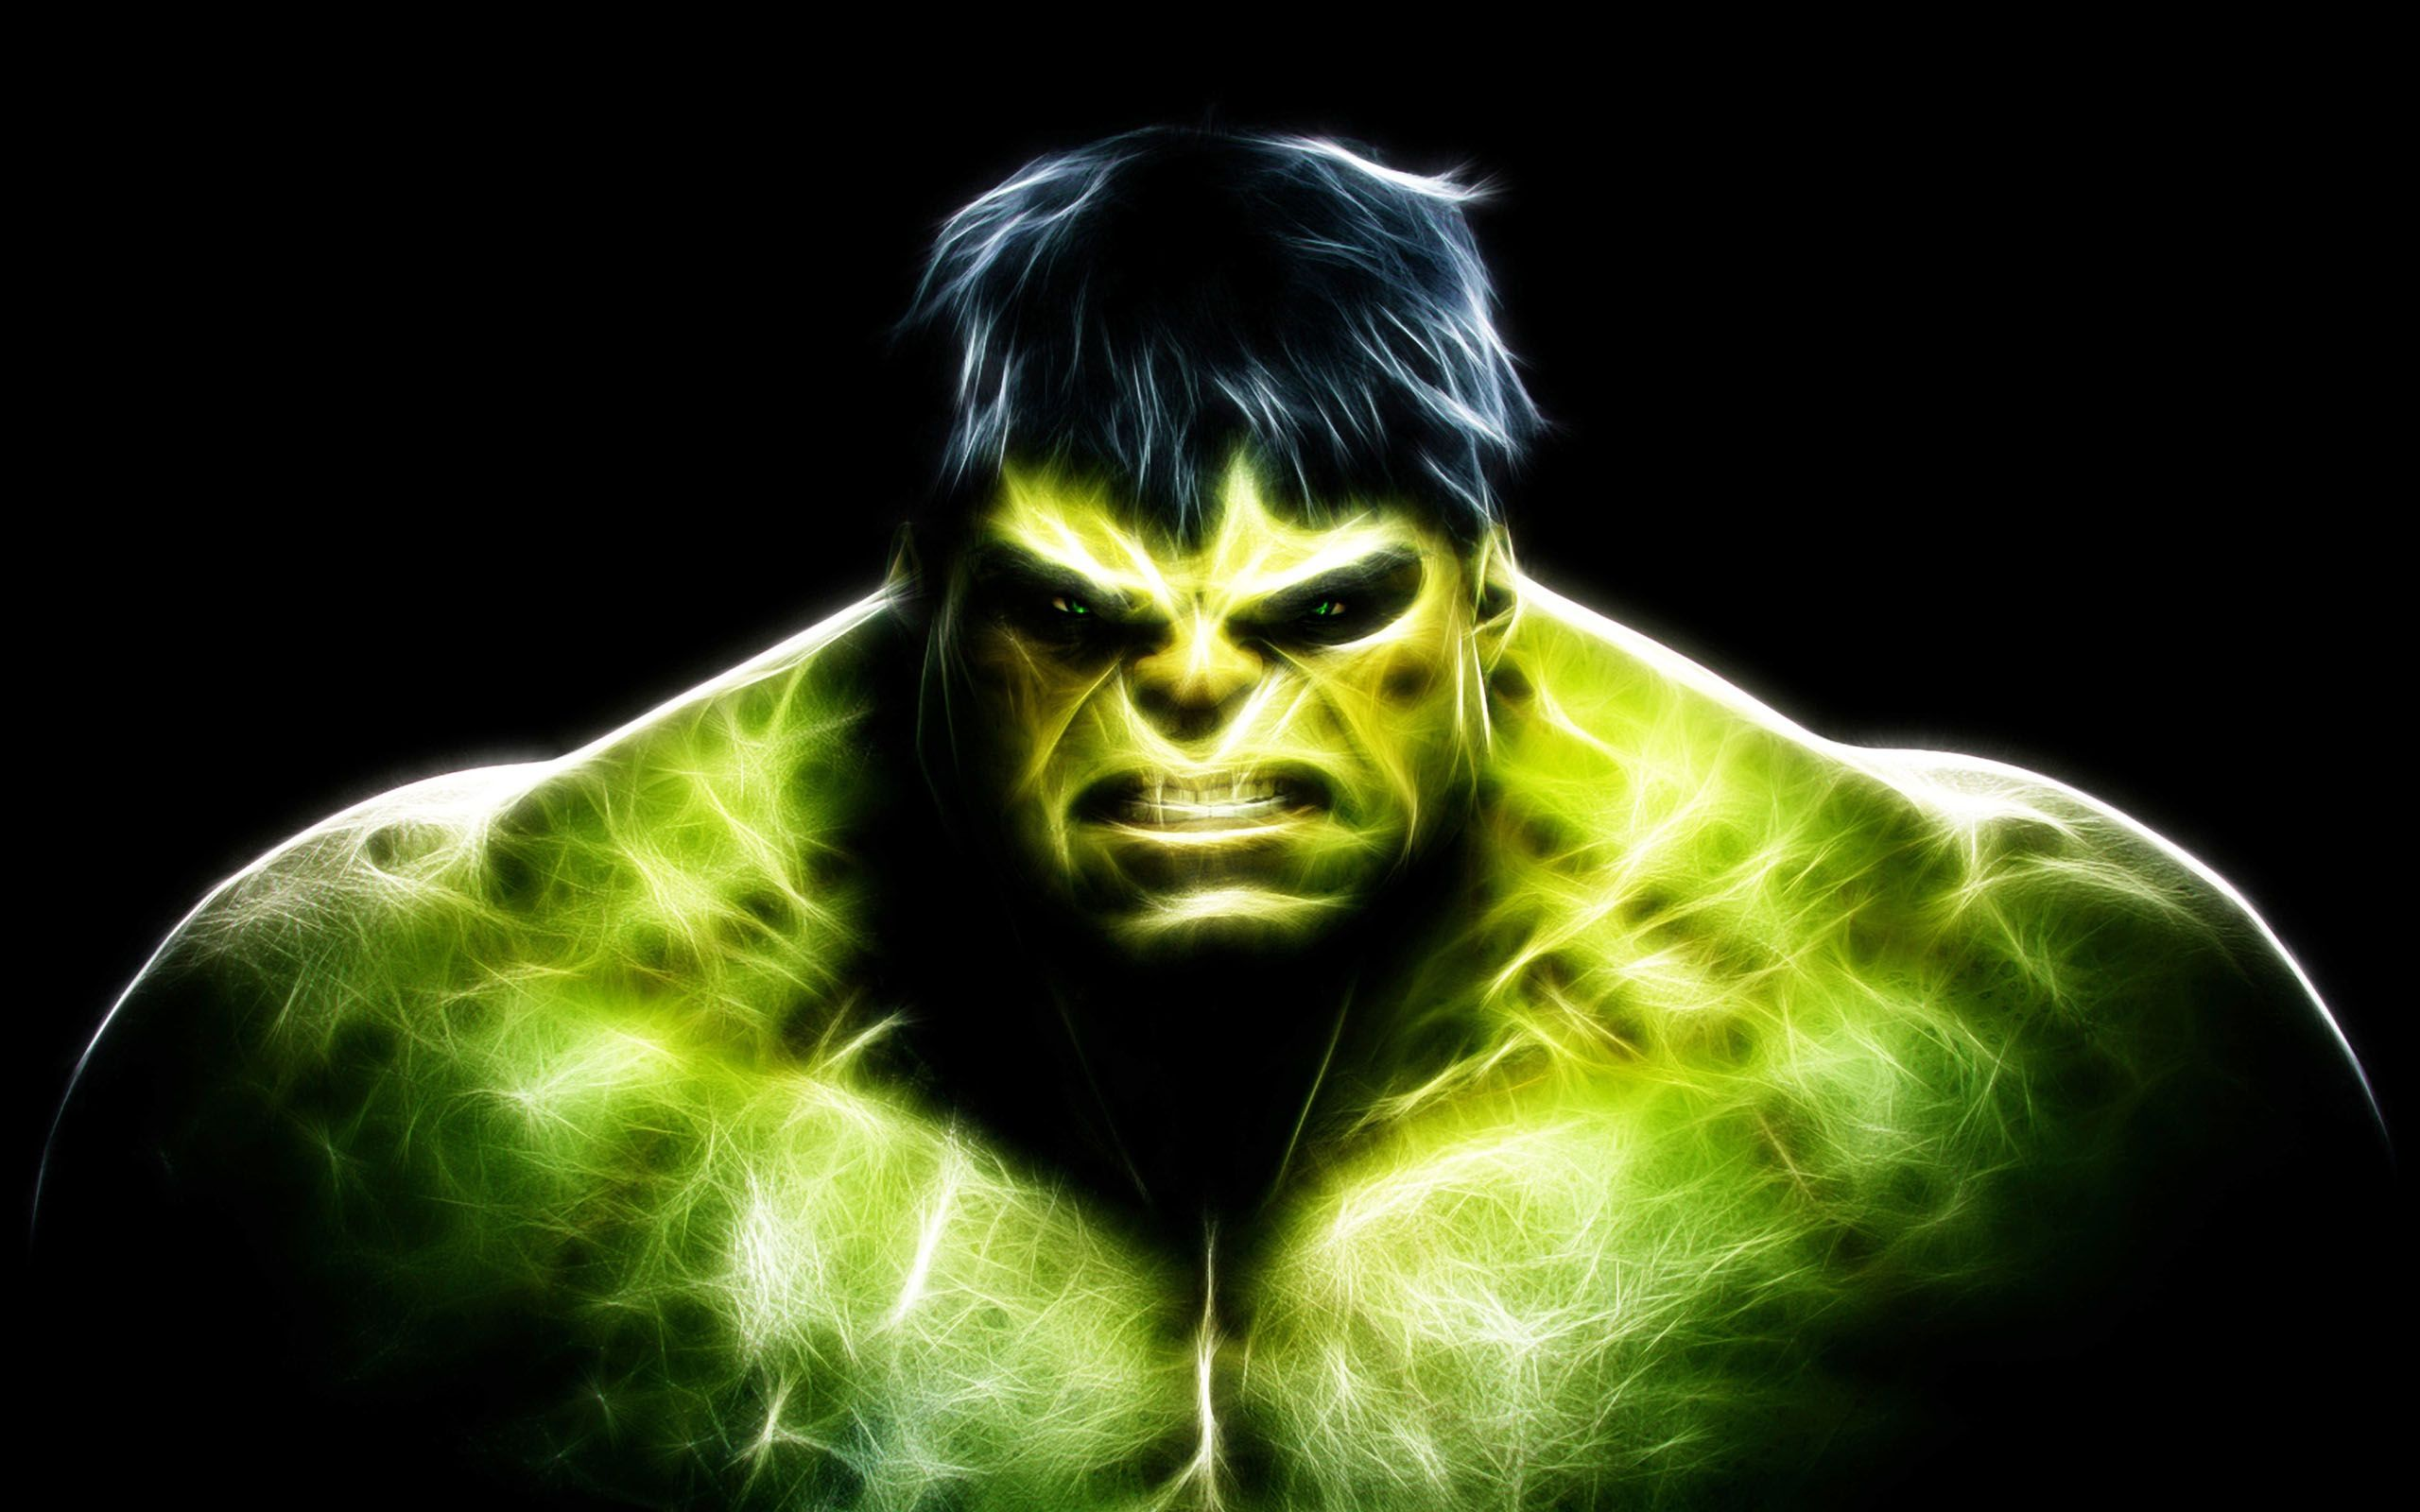 2560x1600 Hulk Wallpaper | 2560x1600 | ID:38049 - WallpaperVortex.com